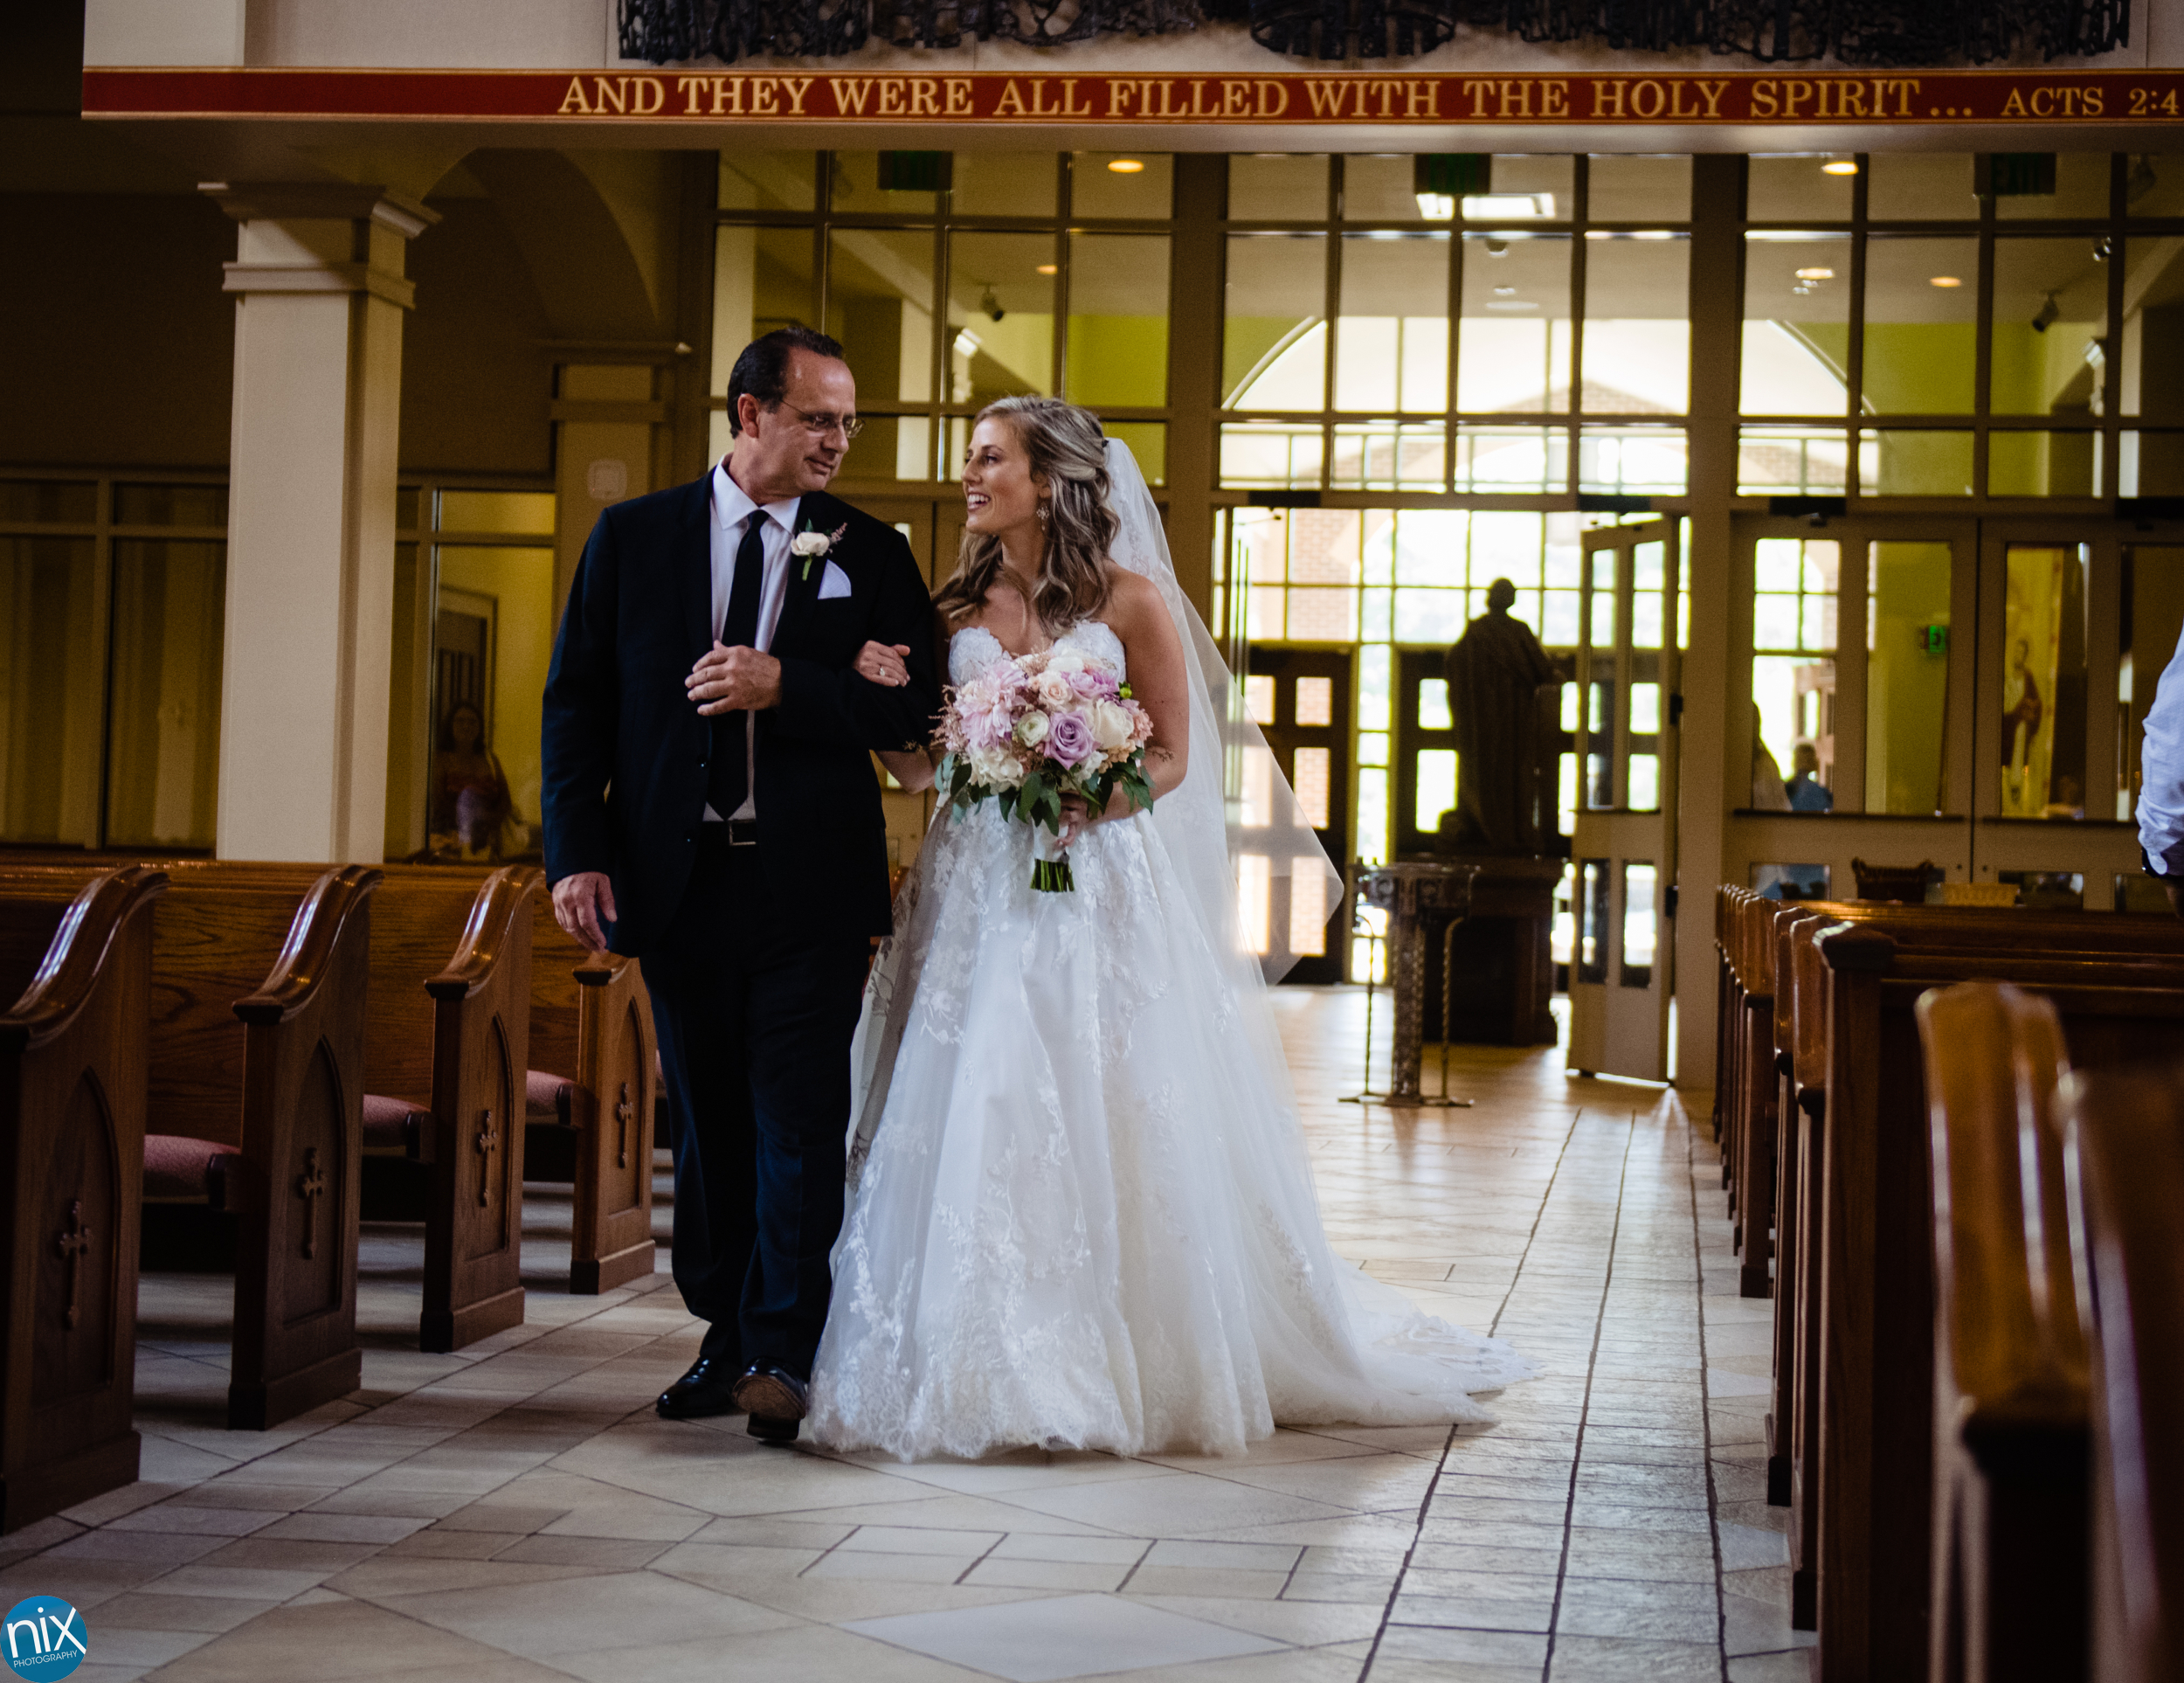 Sarah and Aaron's Wedding at Saint Marks Catholic Church and the Peninsula Club on Saturday, July 13, 2019.